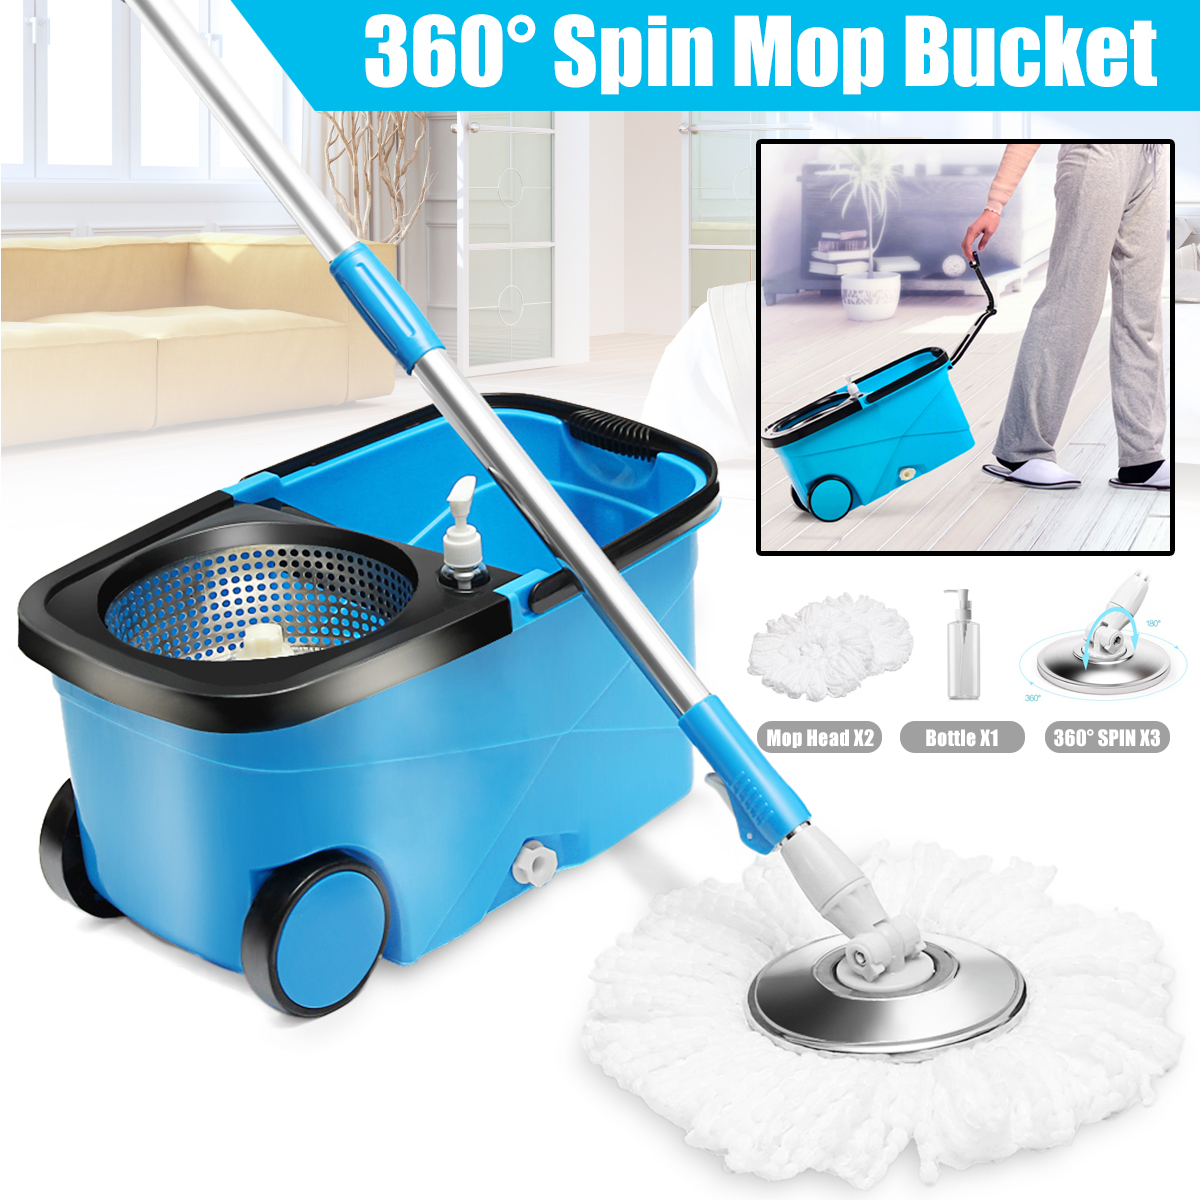 NEW 360° Spinning Mop Stainless Steel Spin Dry Bucket Free 2 Microfibre Heads Clean